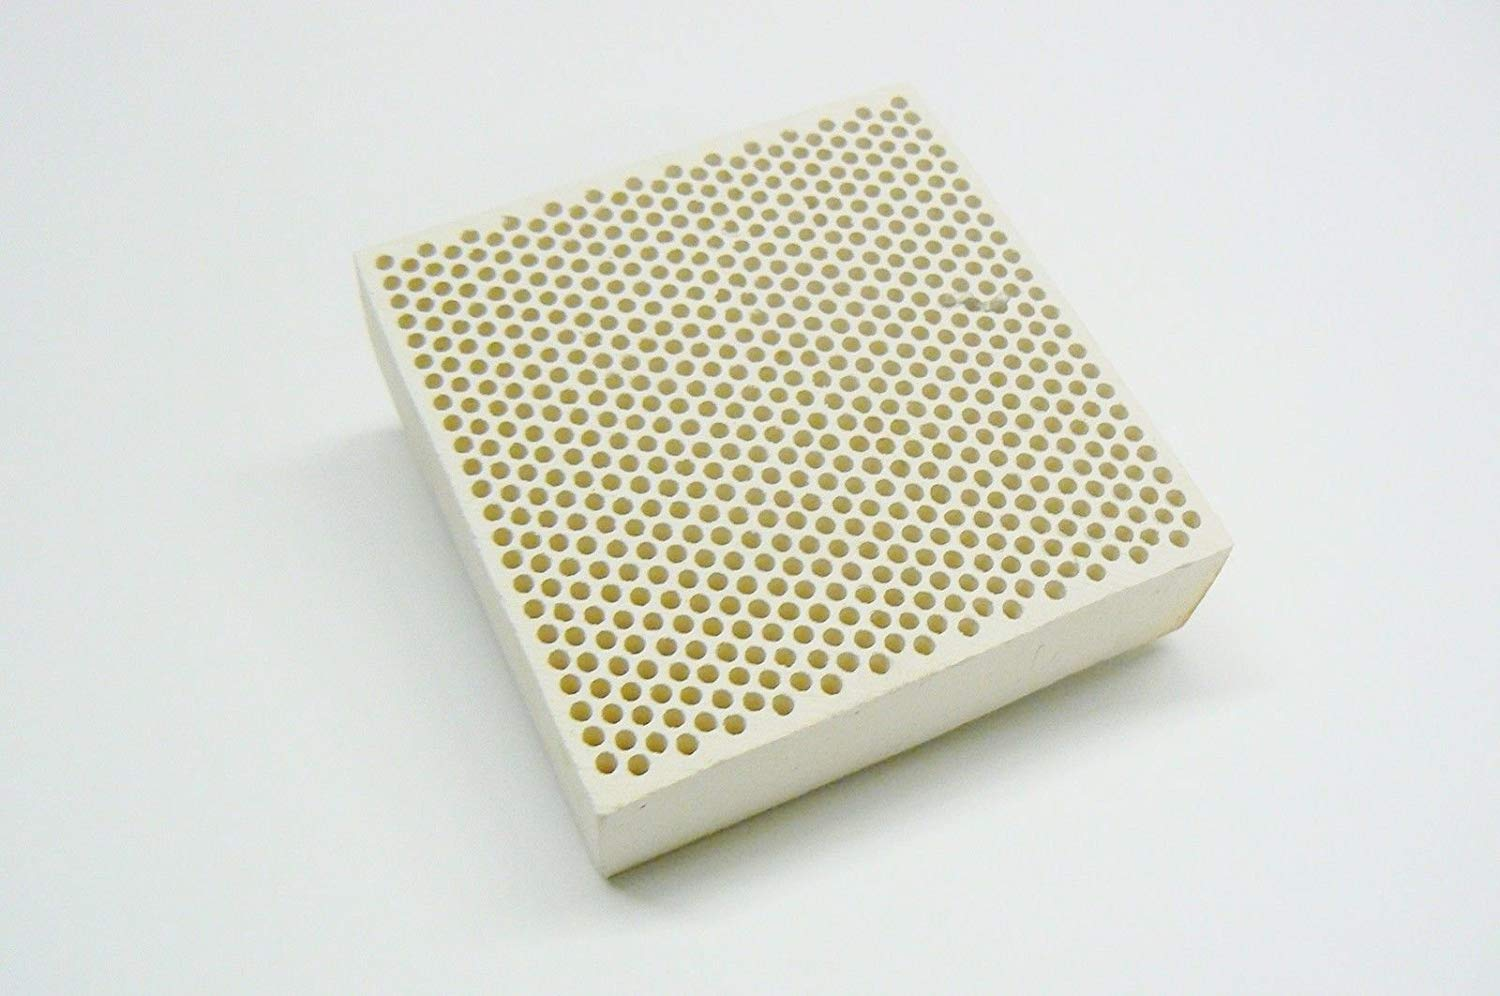 CP3 Brand 1x Alumina Ceramic Plate 4.5 Square 114cm Square 1mm .0394 thick rounded corners by CP3 Inc.